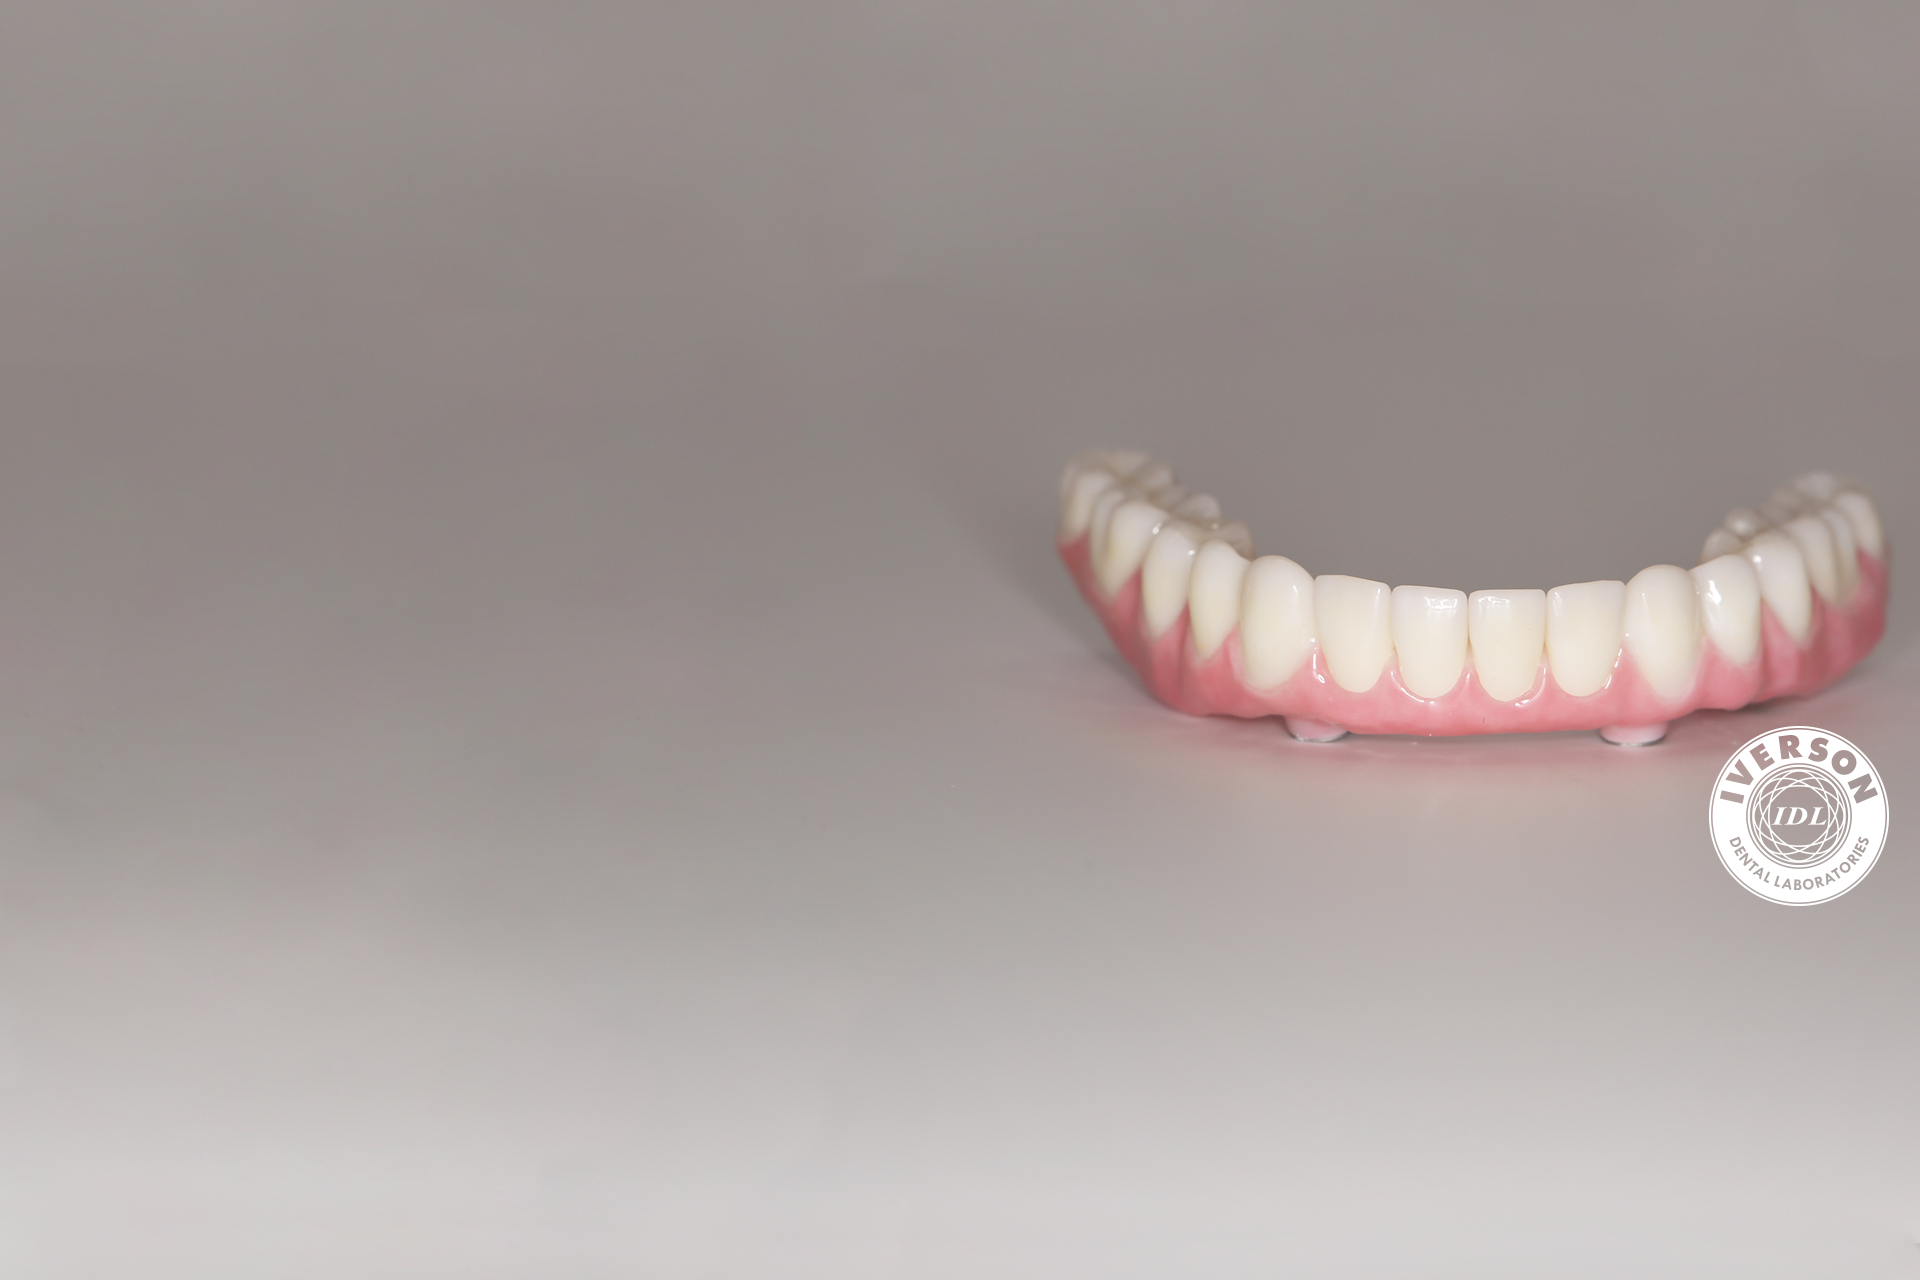 implant denture restoration with custom zirconia copings